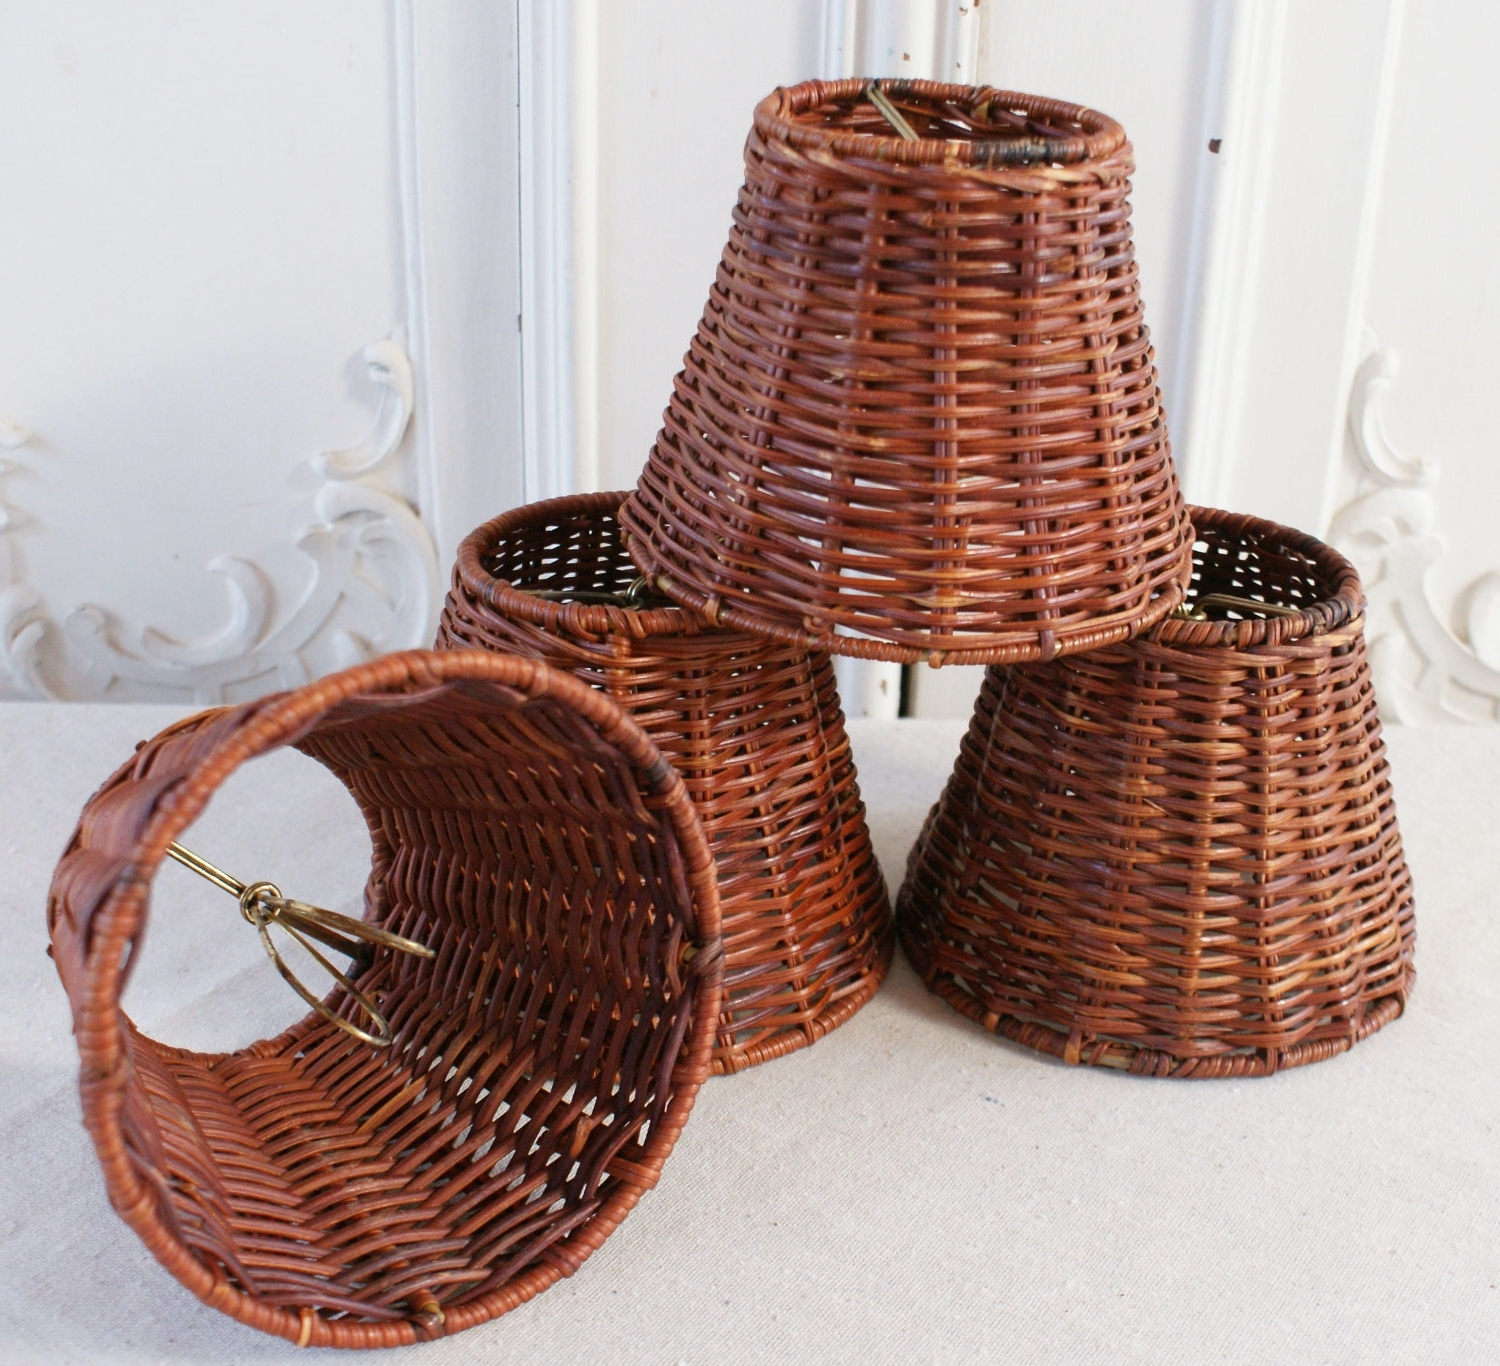 Chandelier Lamp Shades Clip On For 2017 Chandeliers Design : Marvelous Wicker Chandelier With Lamp Shades (View 11 of 15)